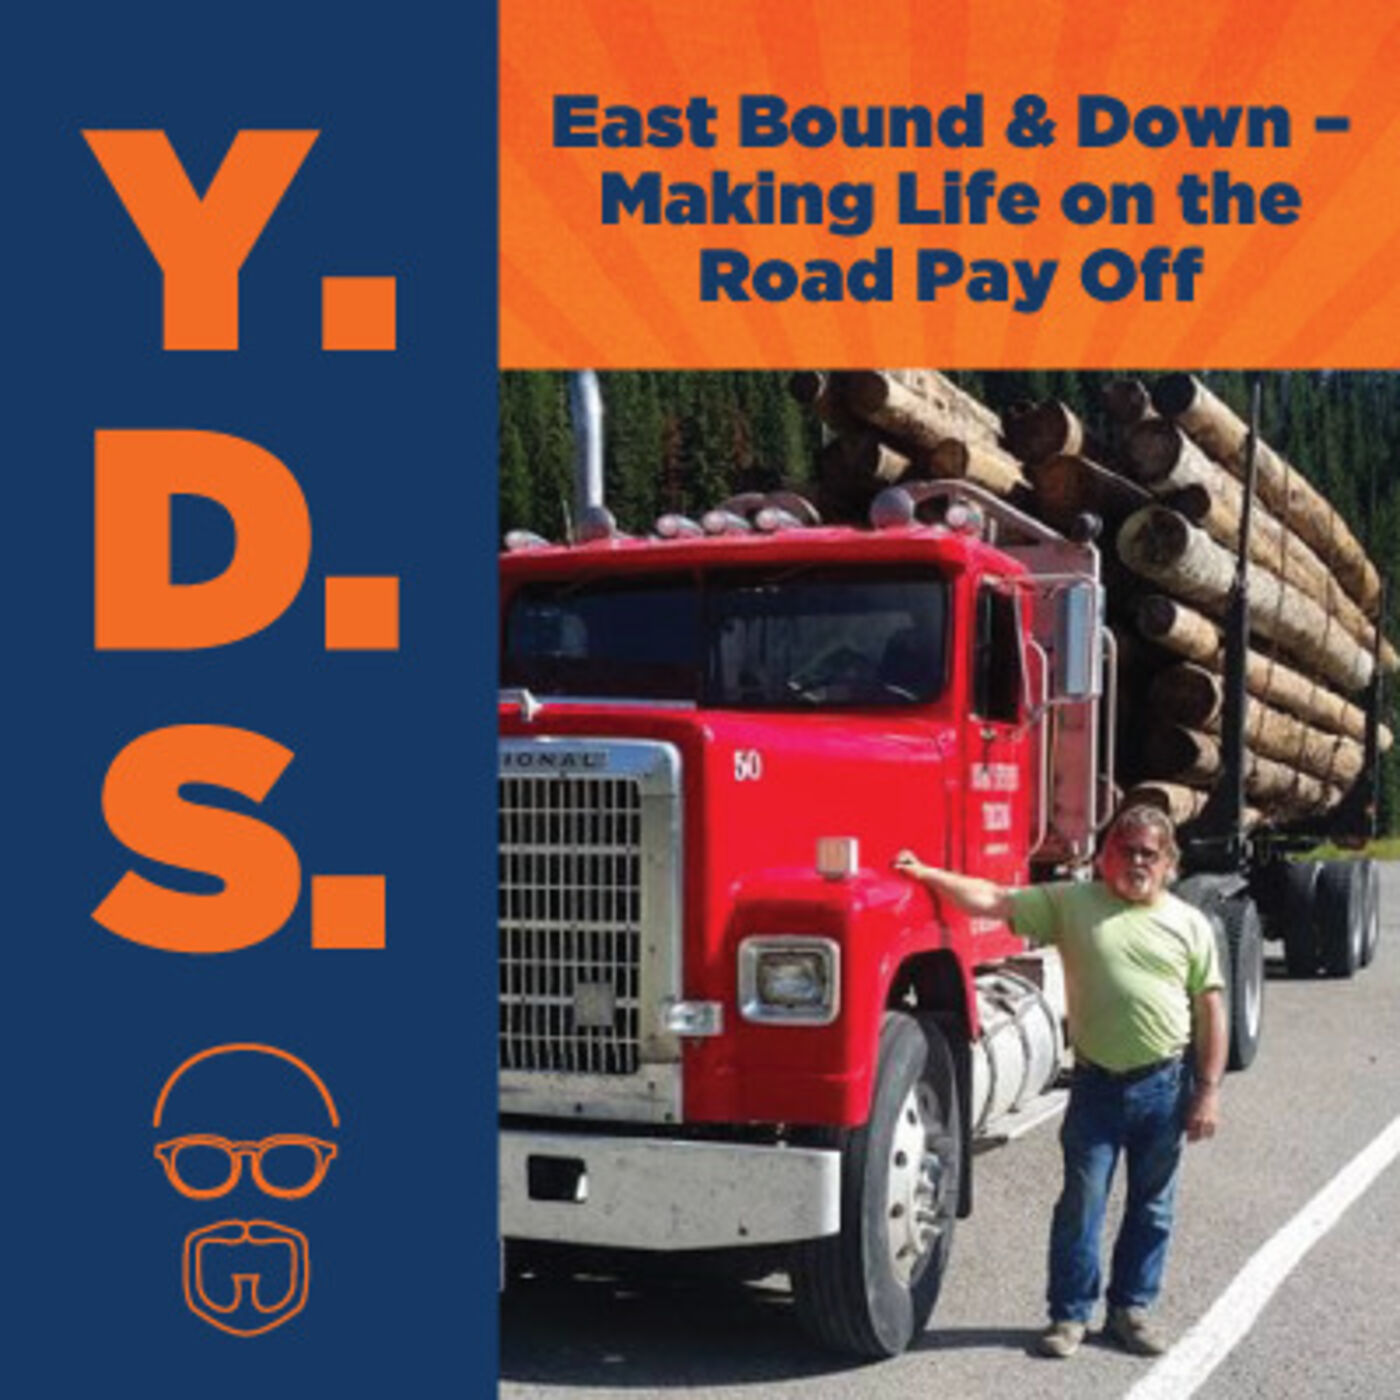 Ep. 11 - East Bound & Down – Making Life on the Road Pay Off